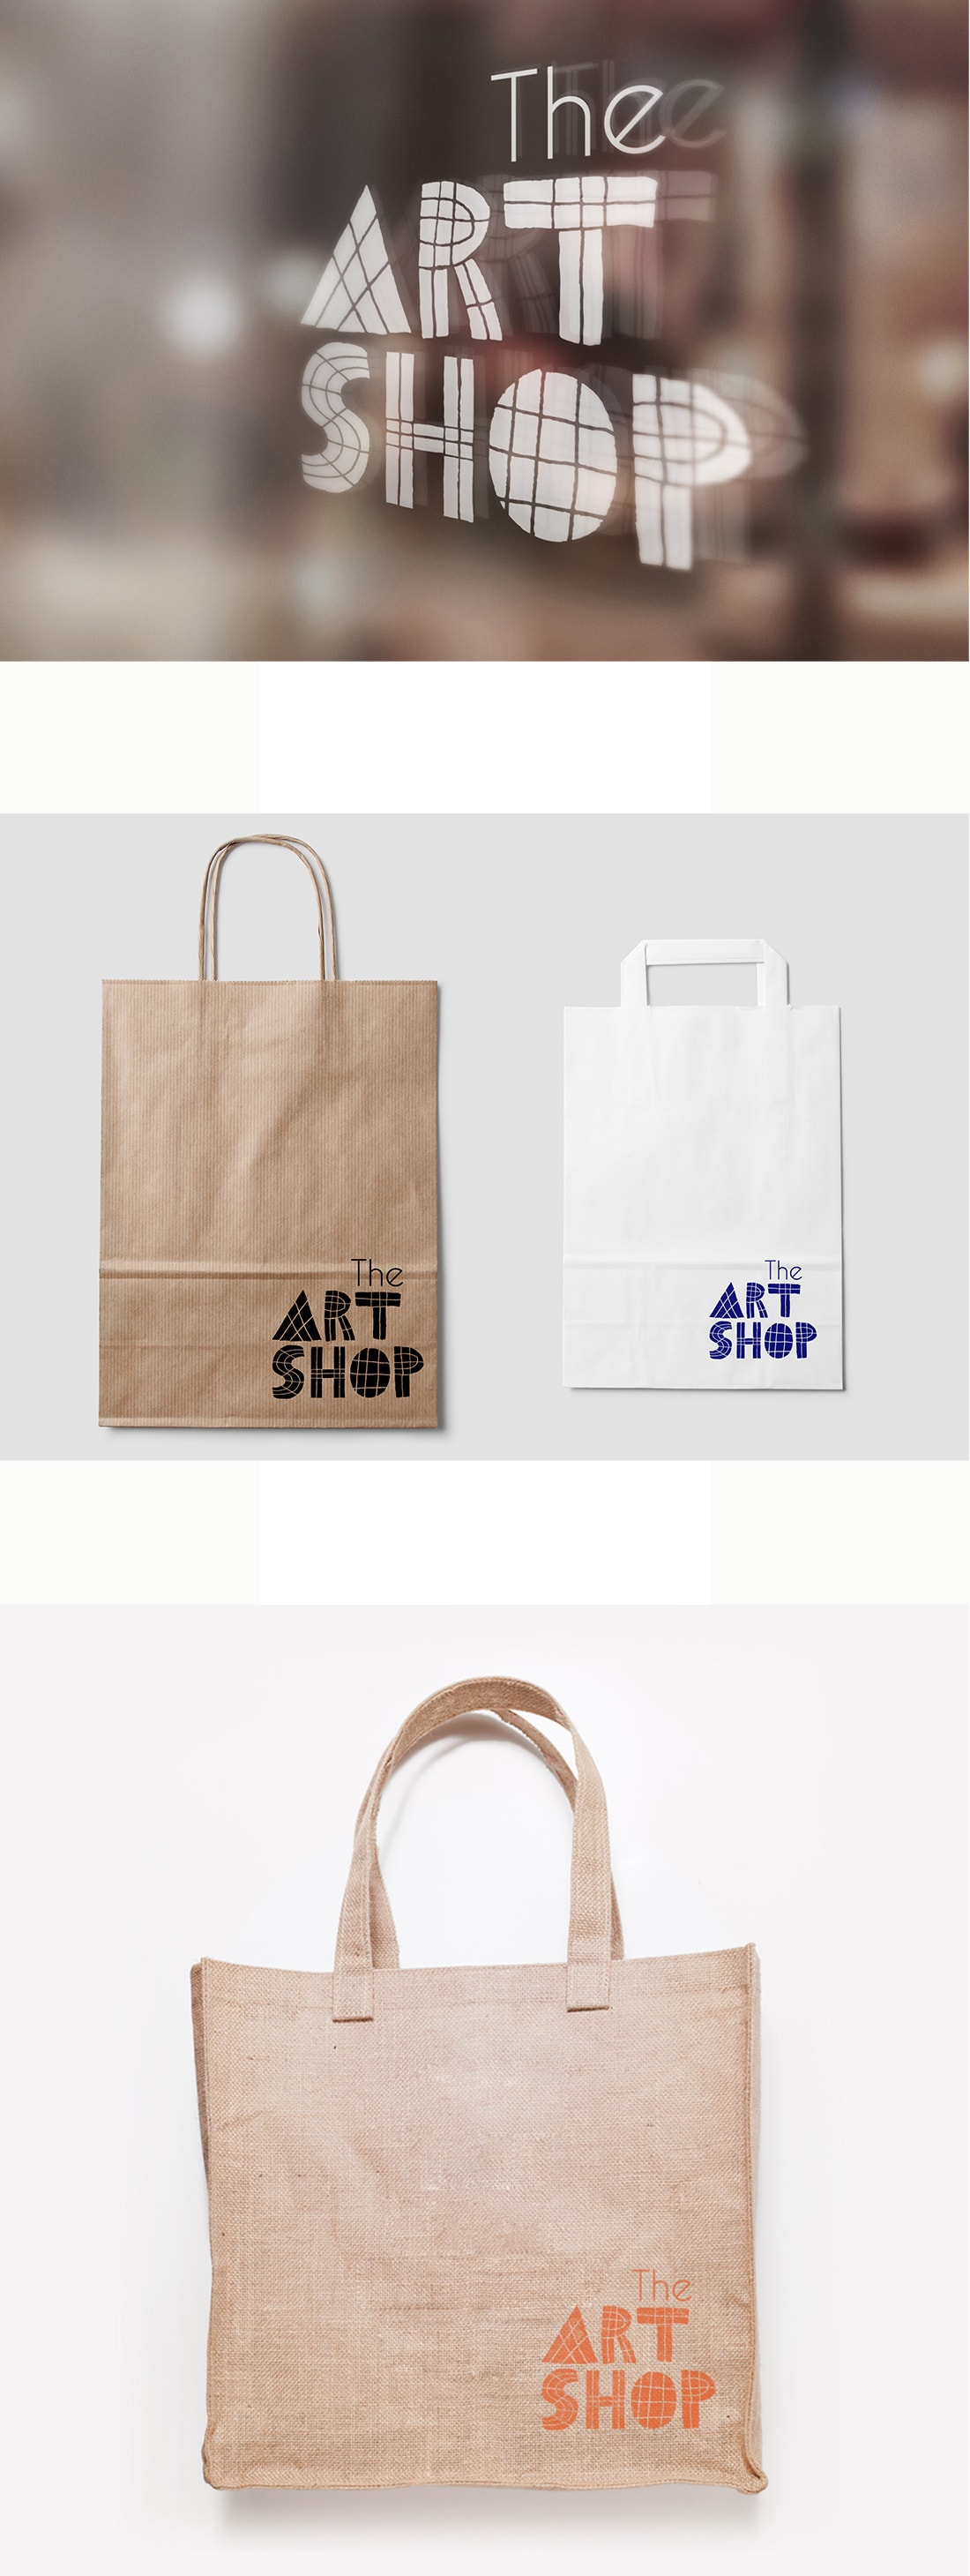 The Art Shop logo displayed on the shop window, canvas and paper bags.